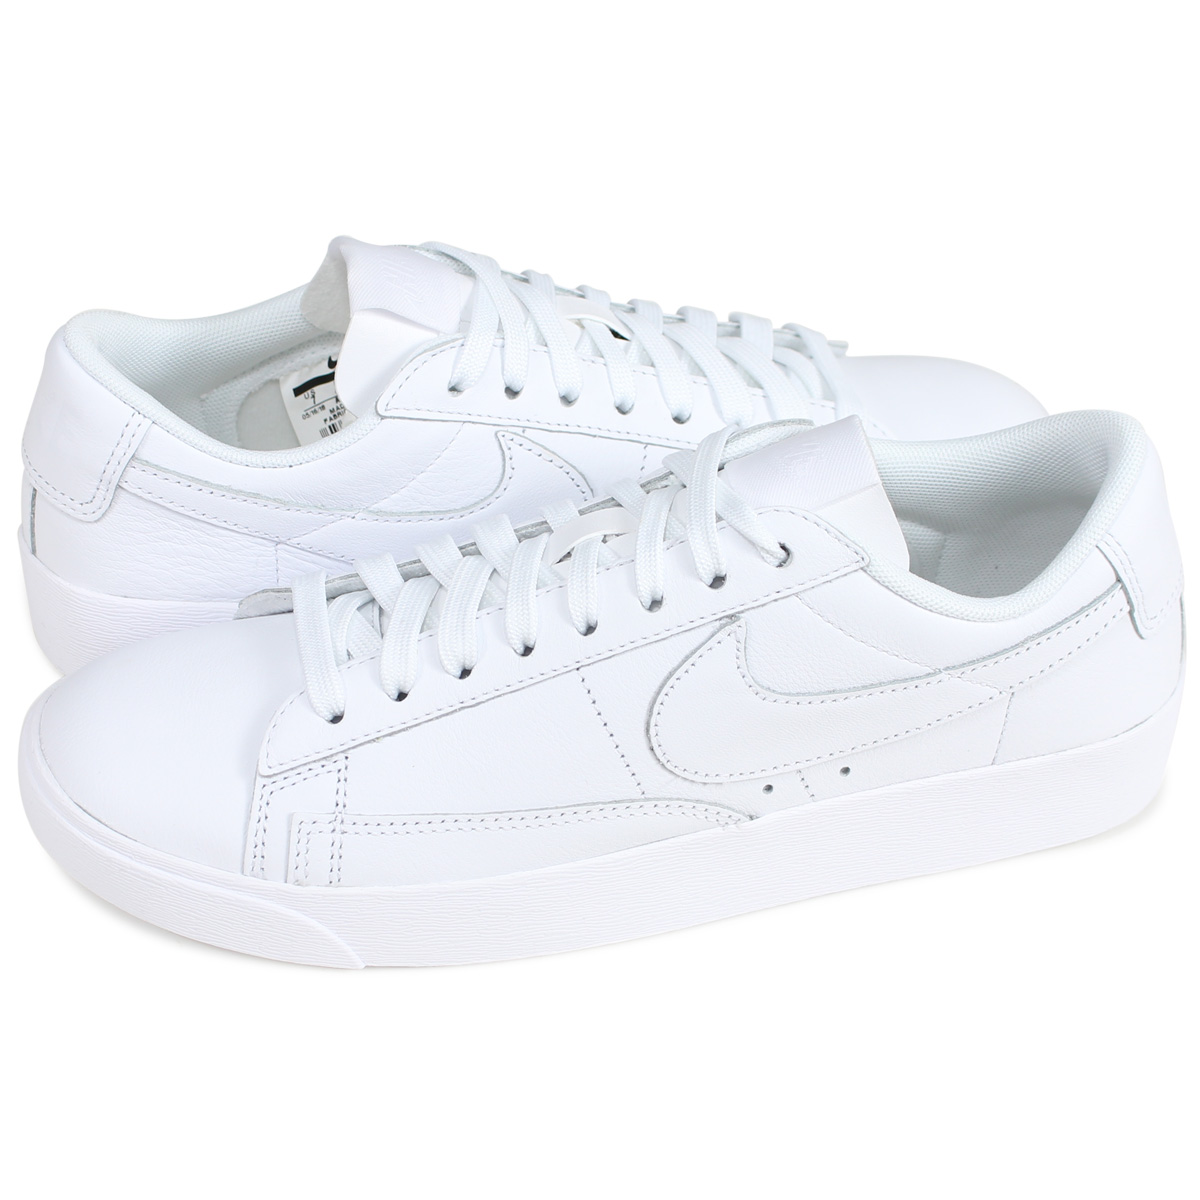 on sale b8c33 4a411 Categories. « All Categories · Shoes · Women s Shoes · Sneakers · Nike NIKE  blazer low sneakers Lady s WMNS BLAZER LOW LEATHER white ...